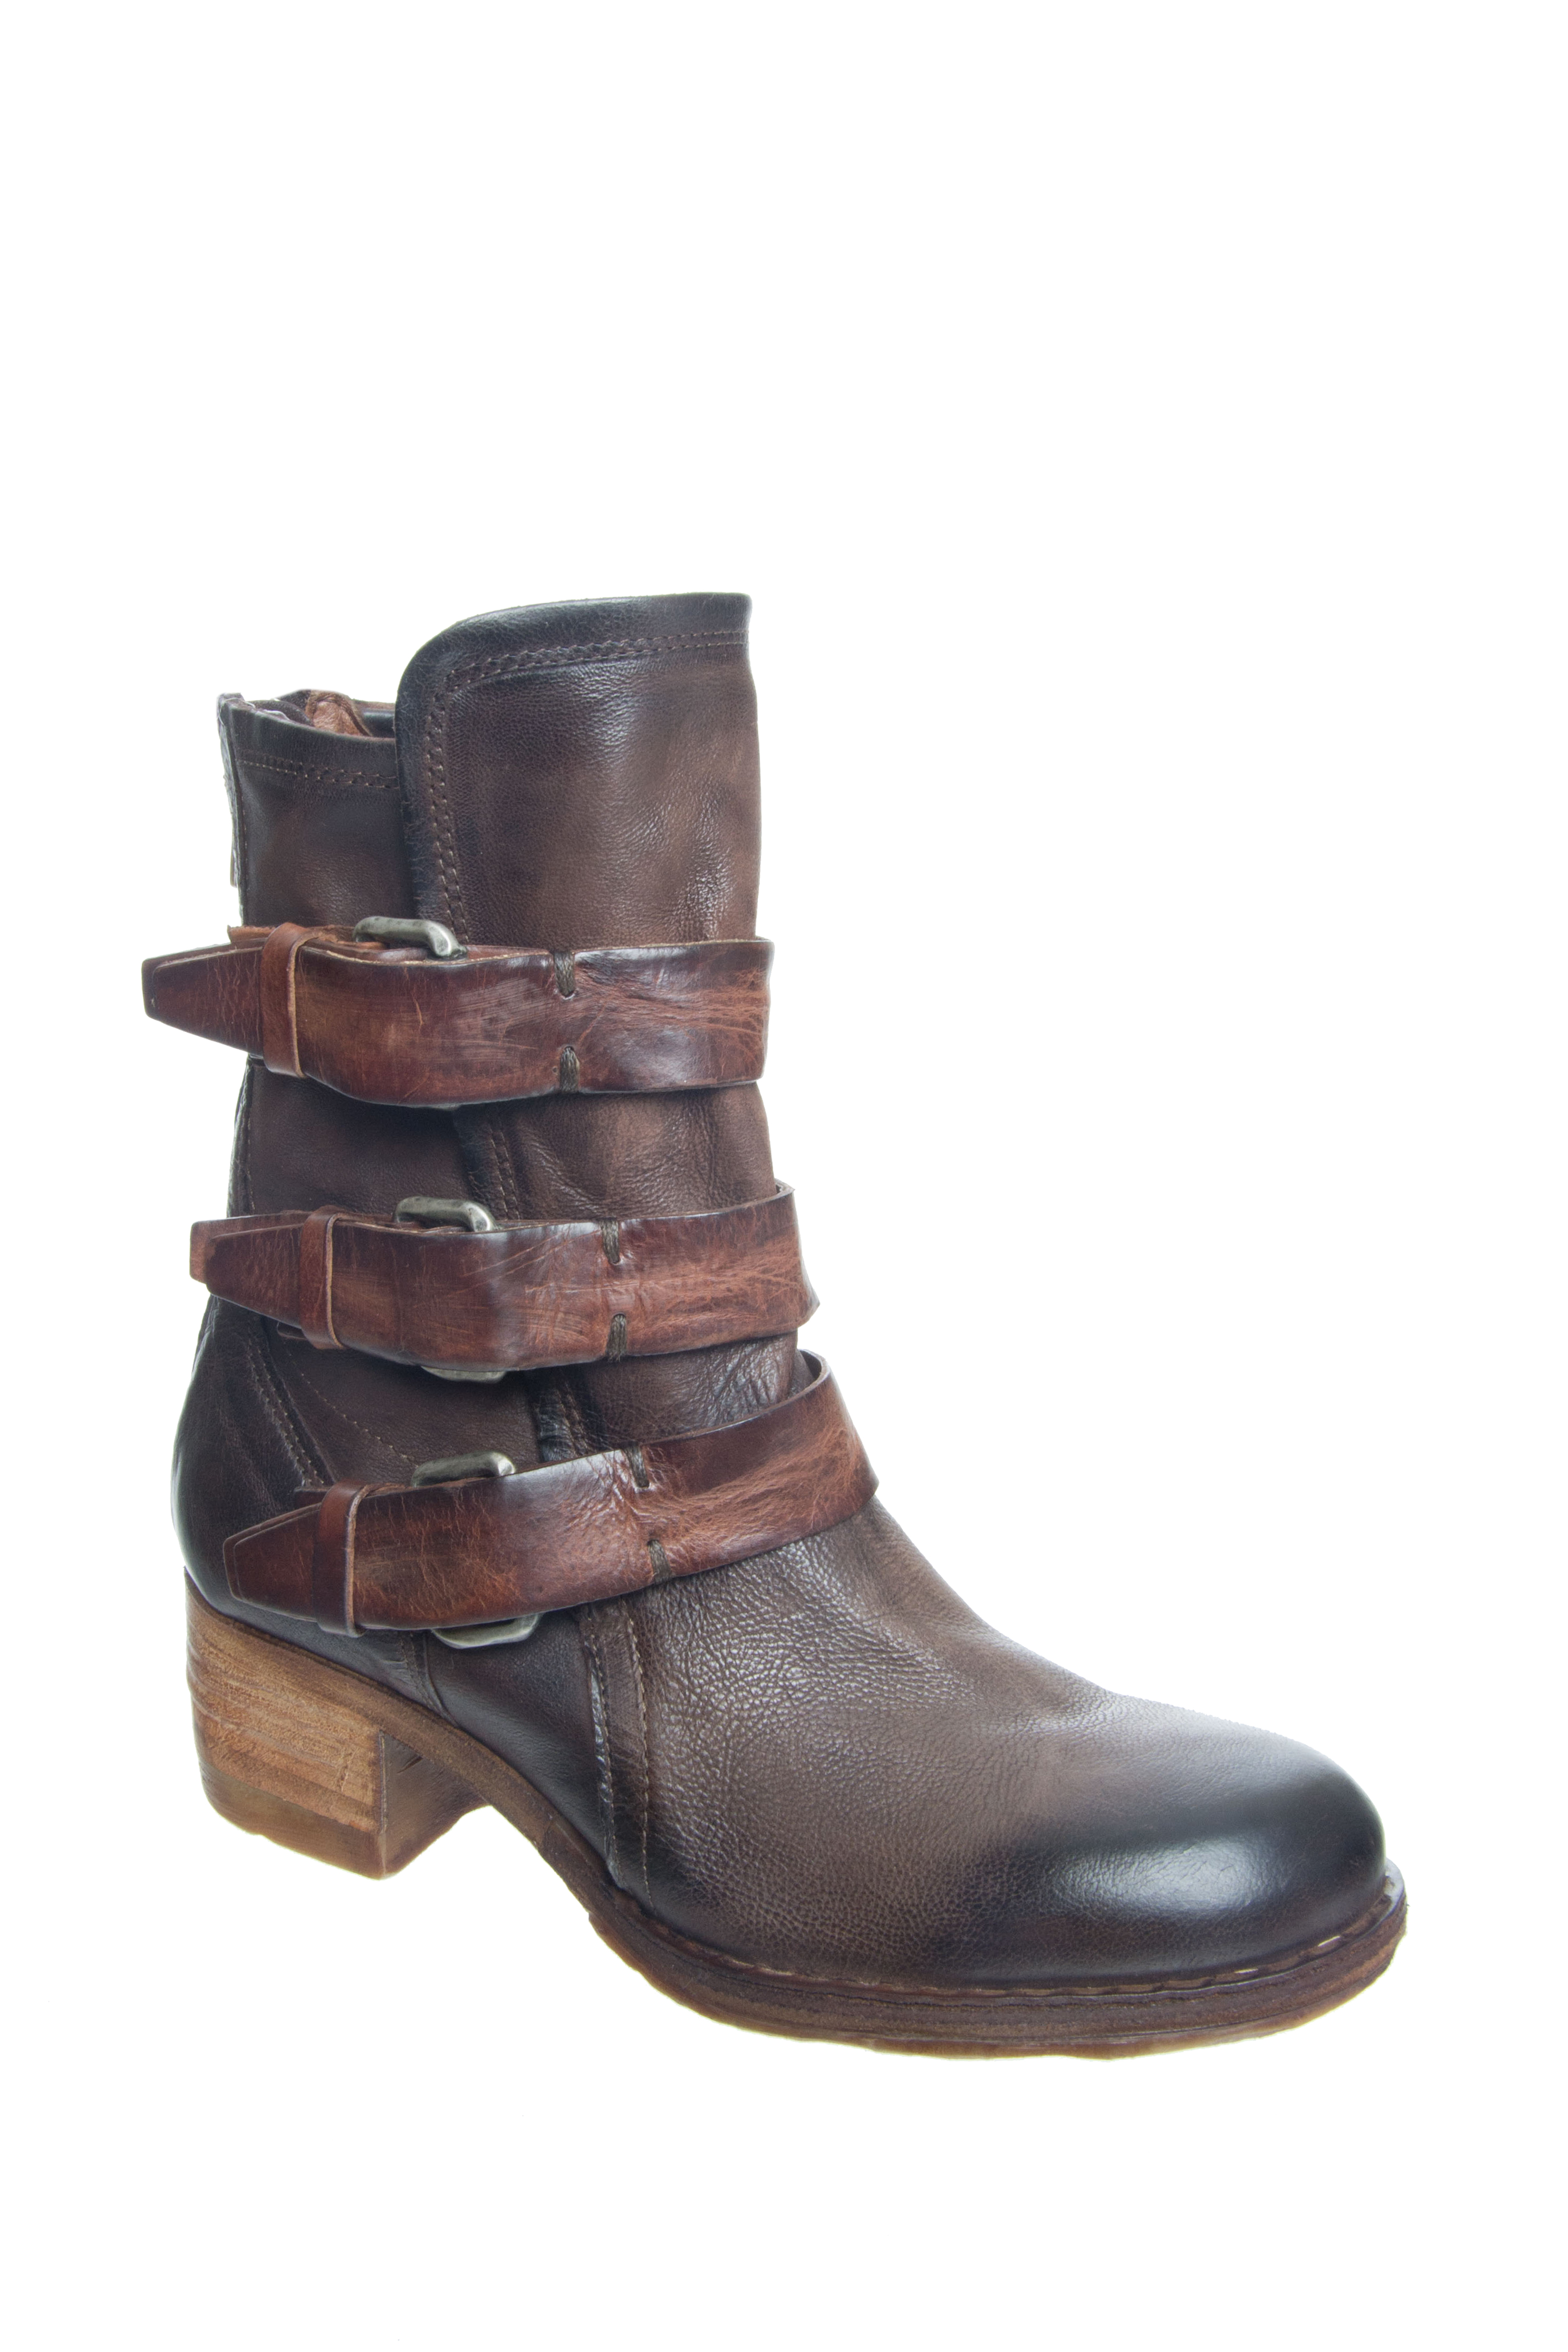 A.S.98 Xyrus Mid Heel Boots - Choco